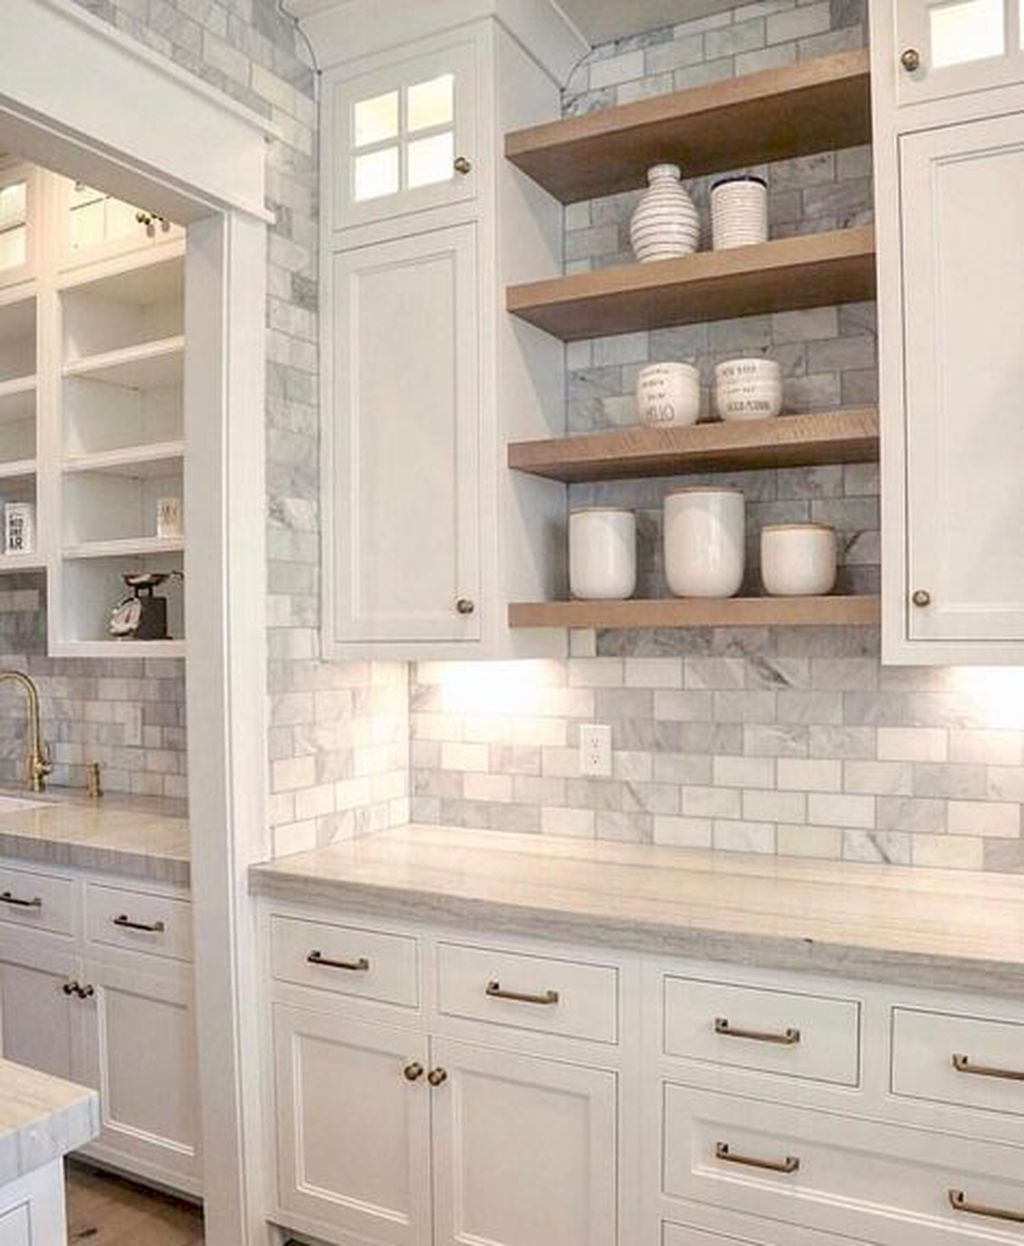 Glorious Kitchen Cupboard Concepts In 2020 Home Decor Kitchen Kitchen Renovation Home Kitchens